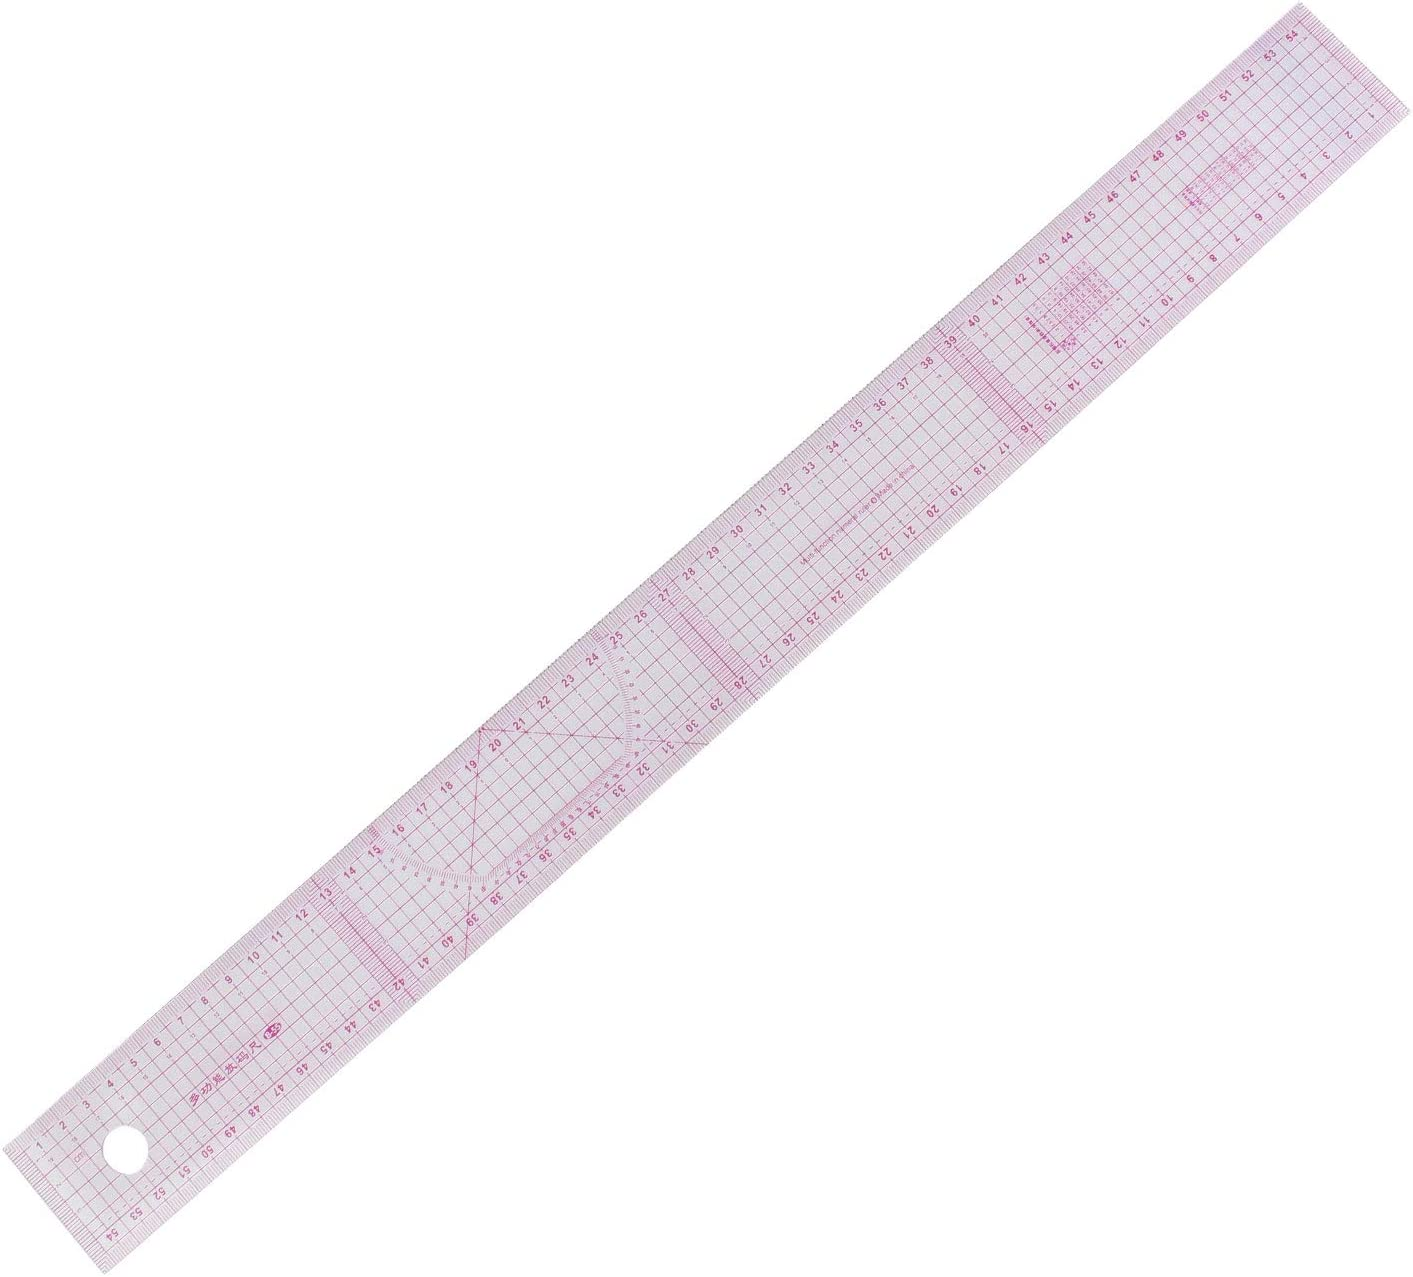 Centimeter//inch RZDEAL 6 Stlye Plastic Fashion Stick Pattern Design Rulers Set Design Craft Sewing Drawing Tool